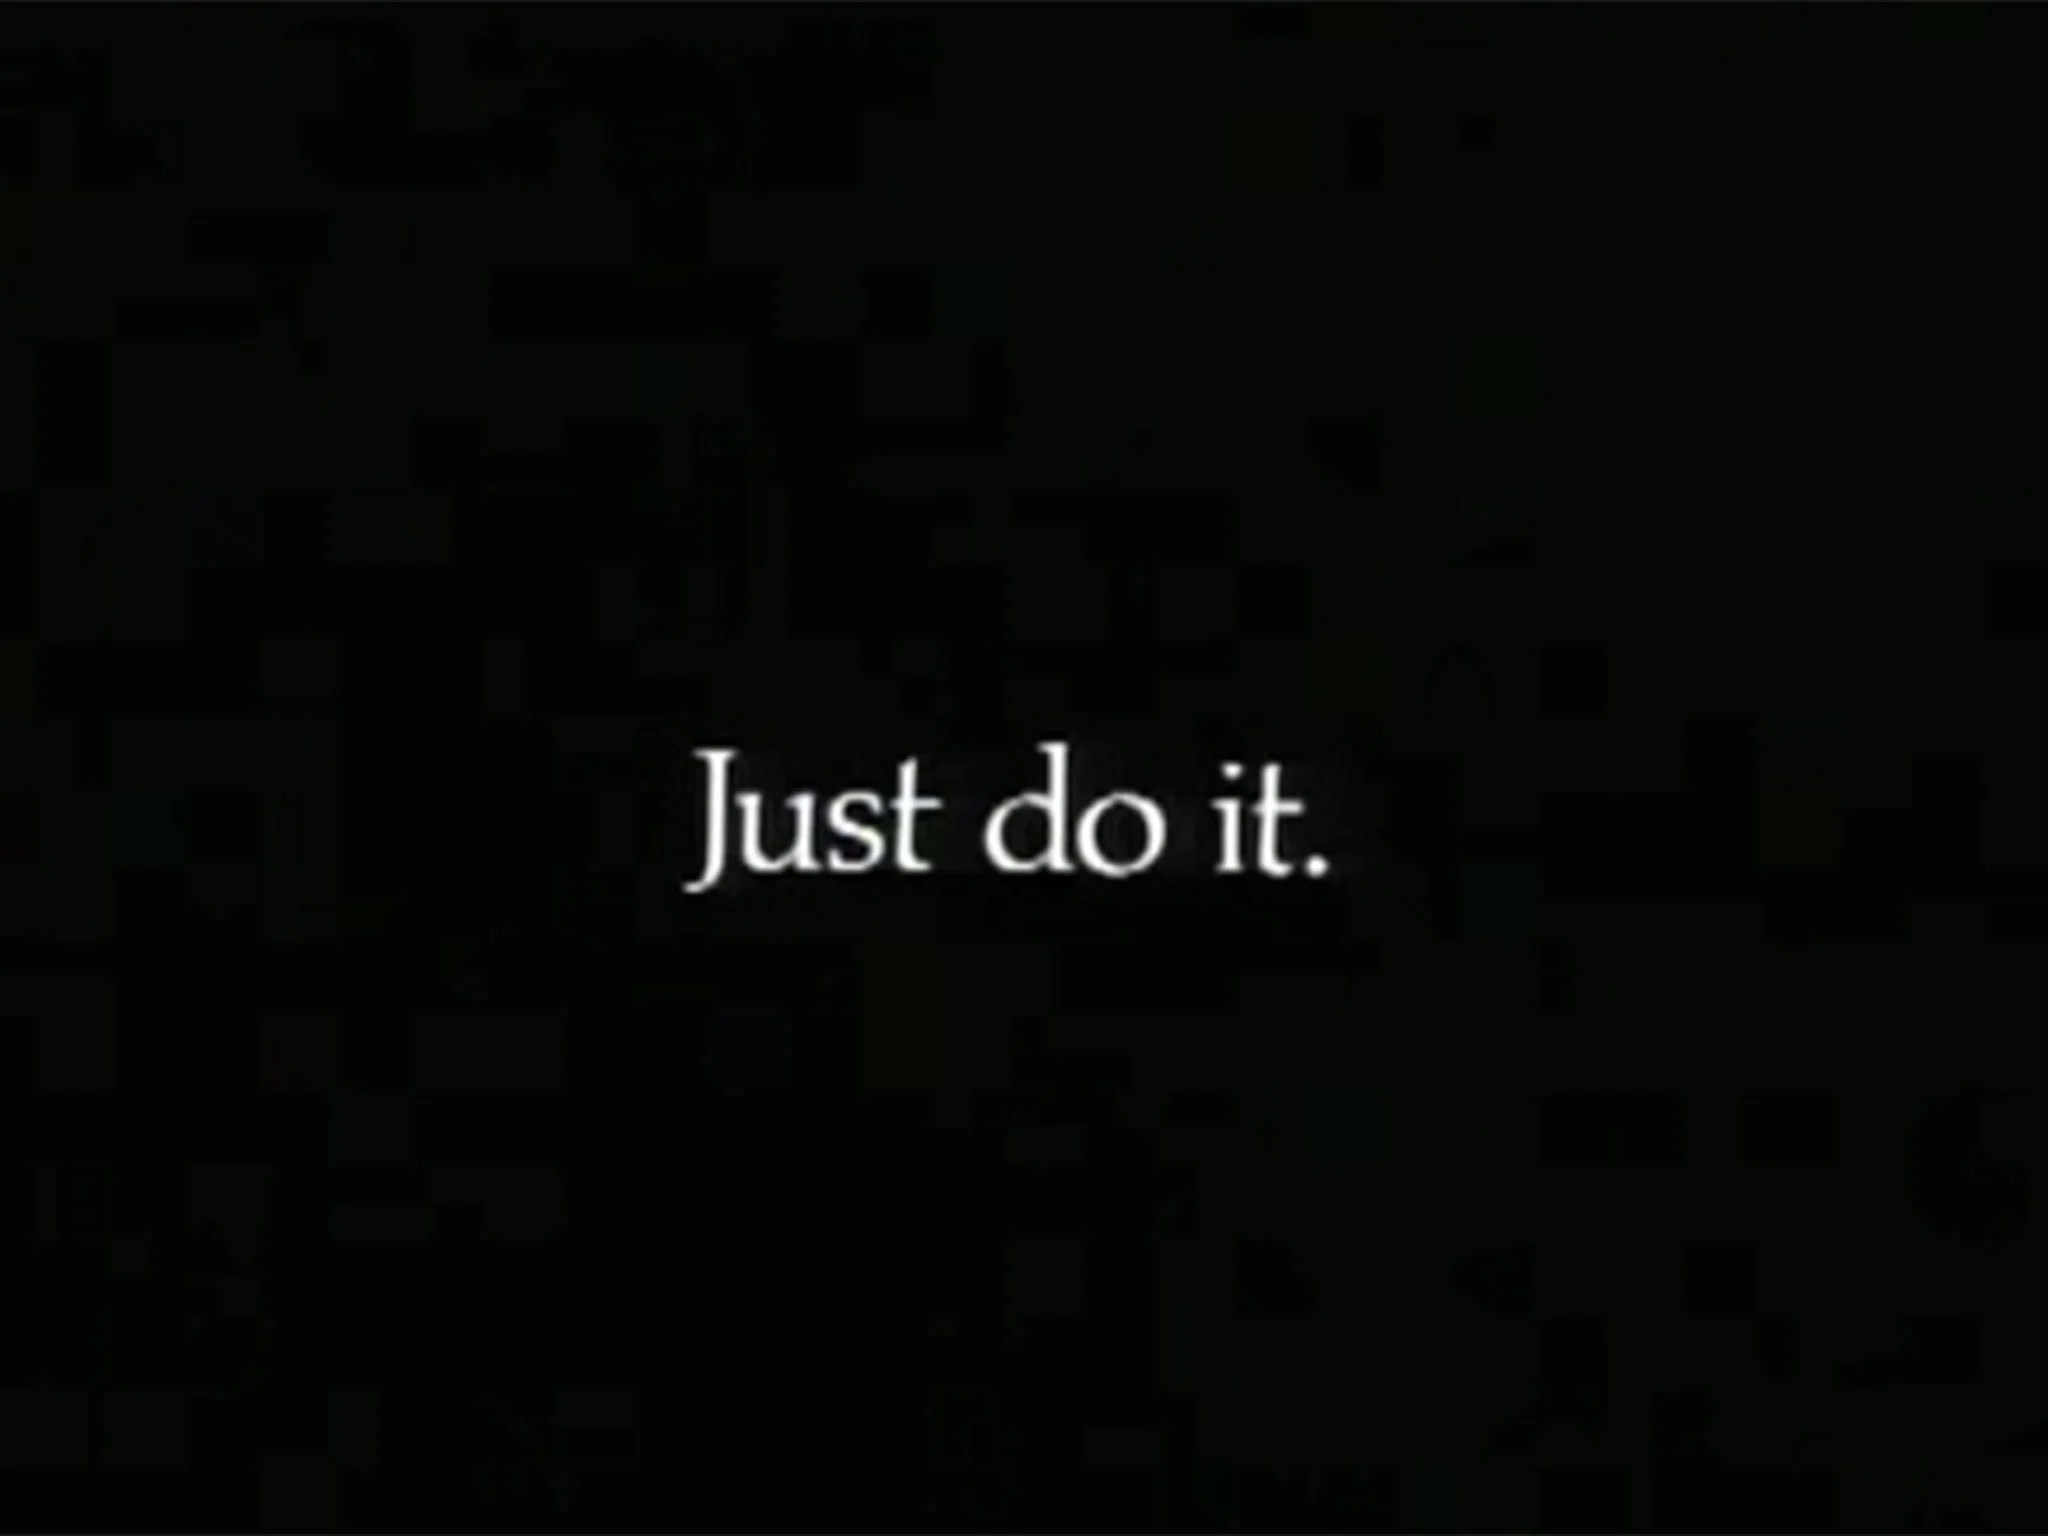 Nike Do Revealed Nike S Just Do It Slogan Was Inspired By A Convicted